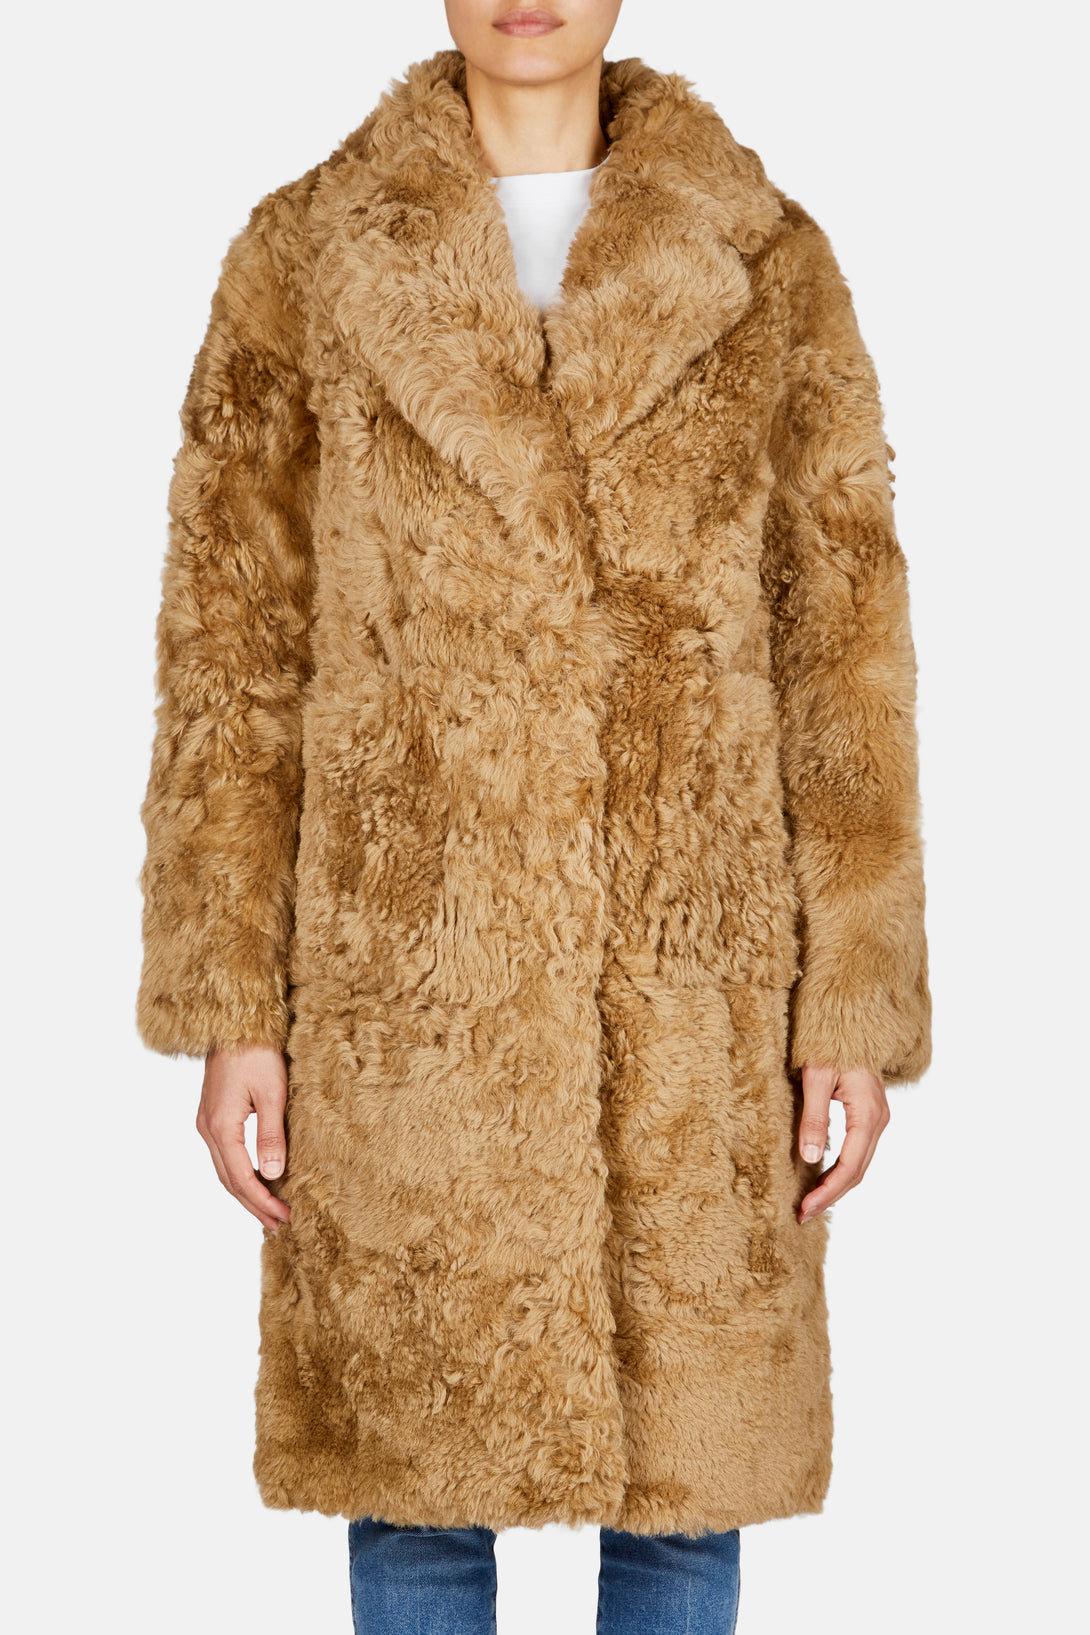 Teddy Collared Cocoon Coat - Camel